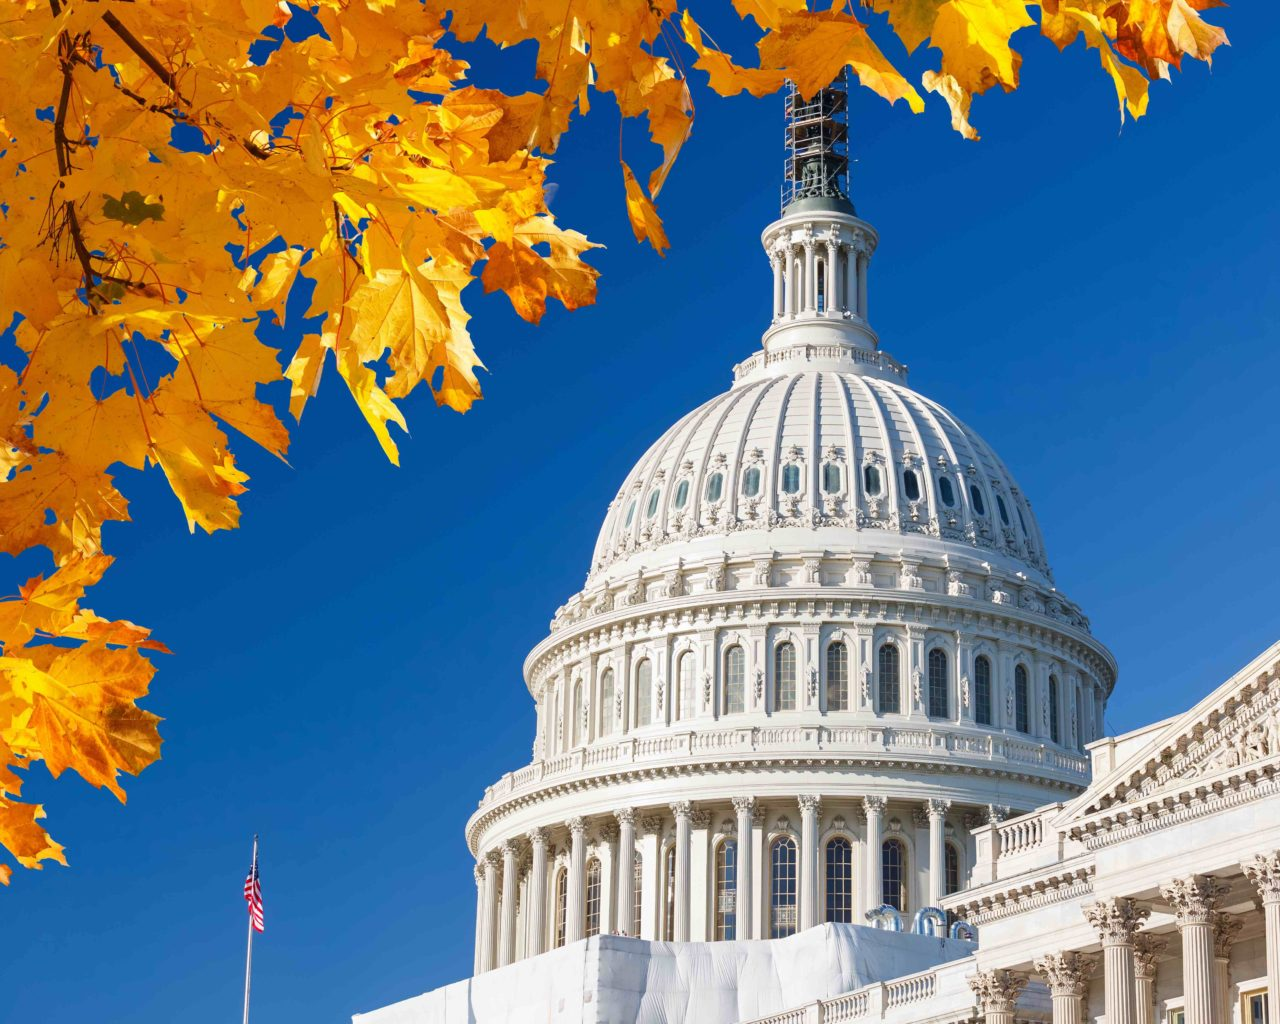 US Capitol in the Fall 2016